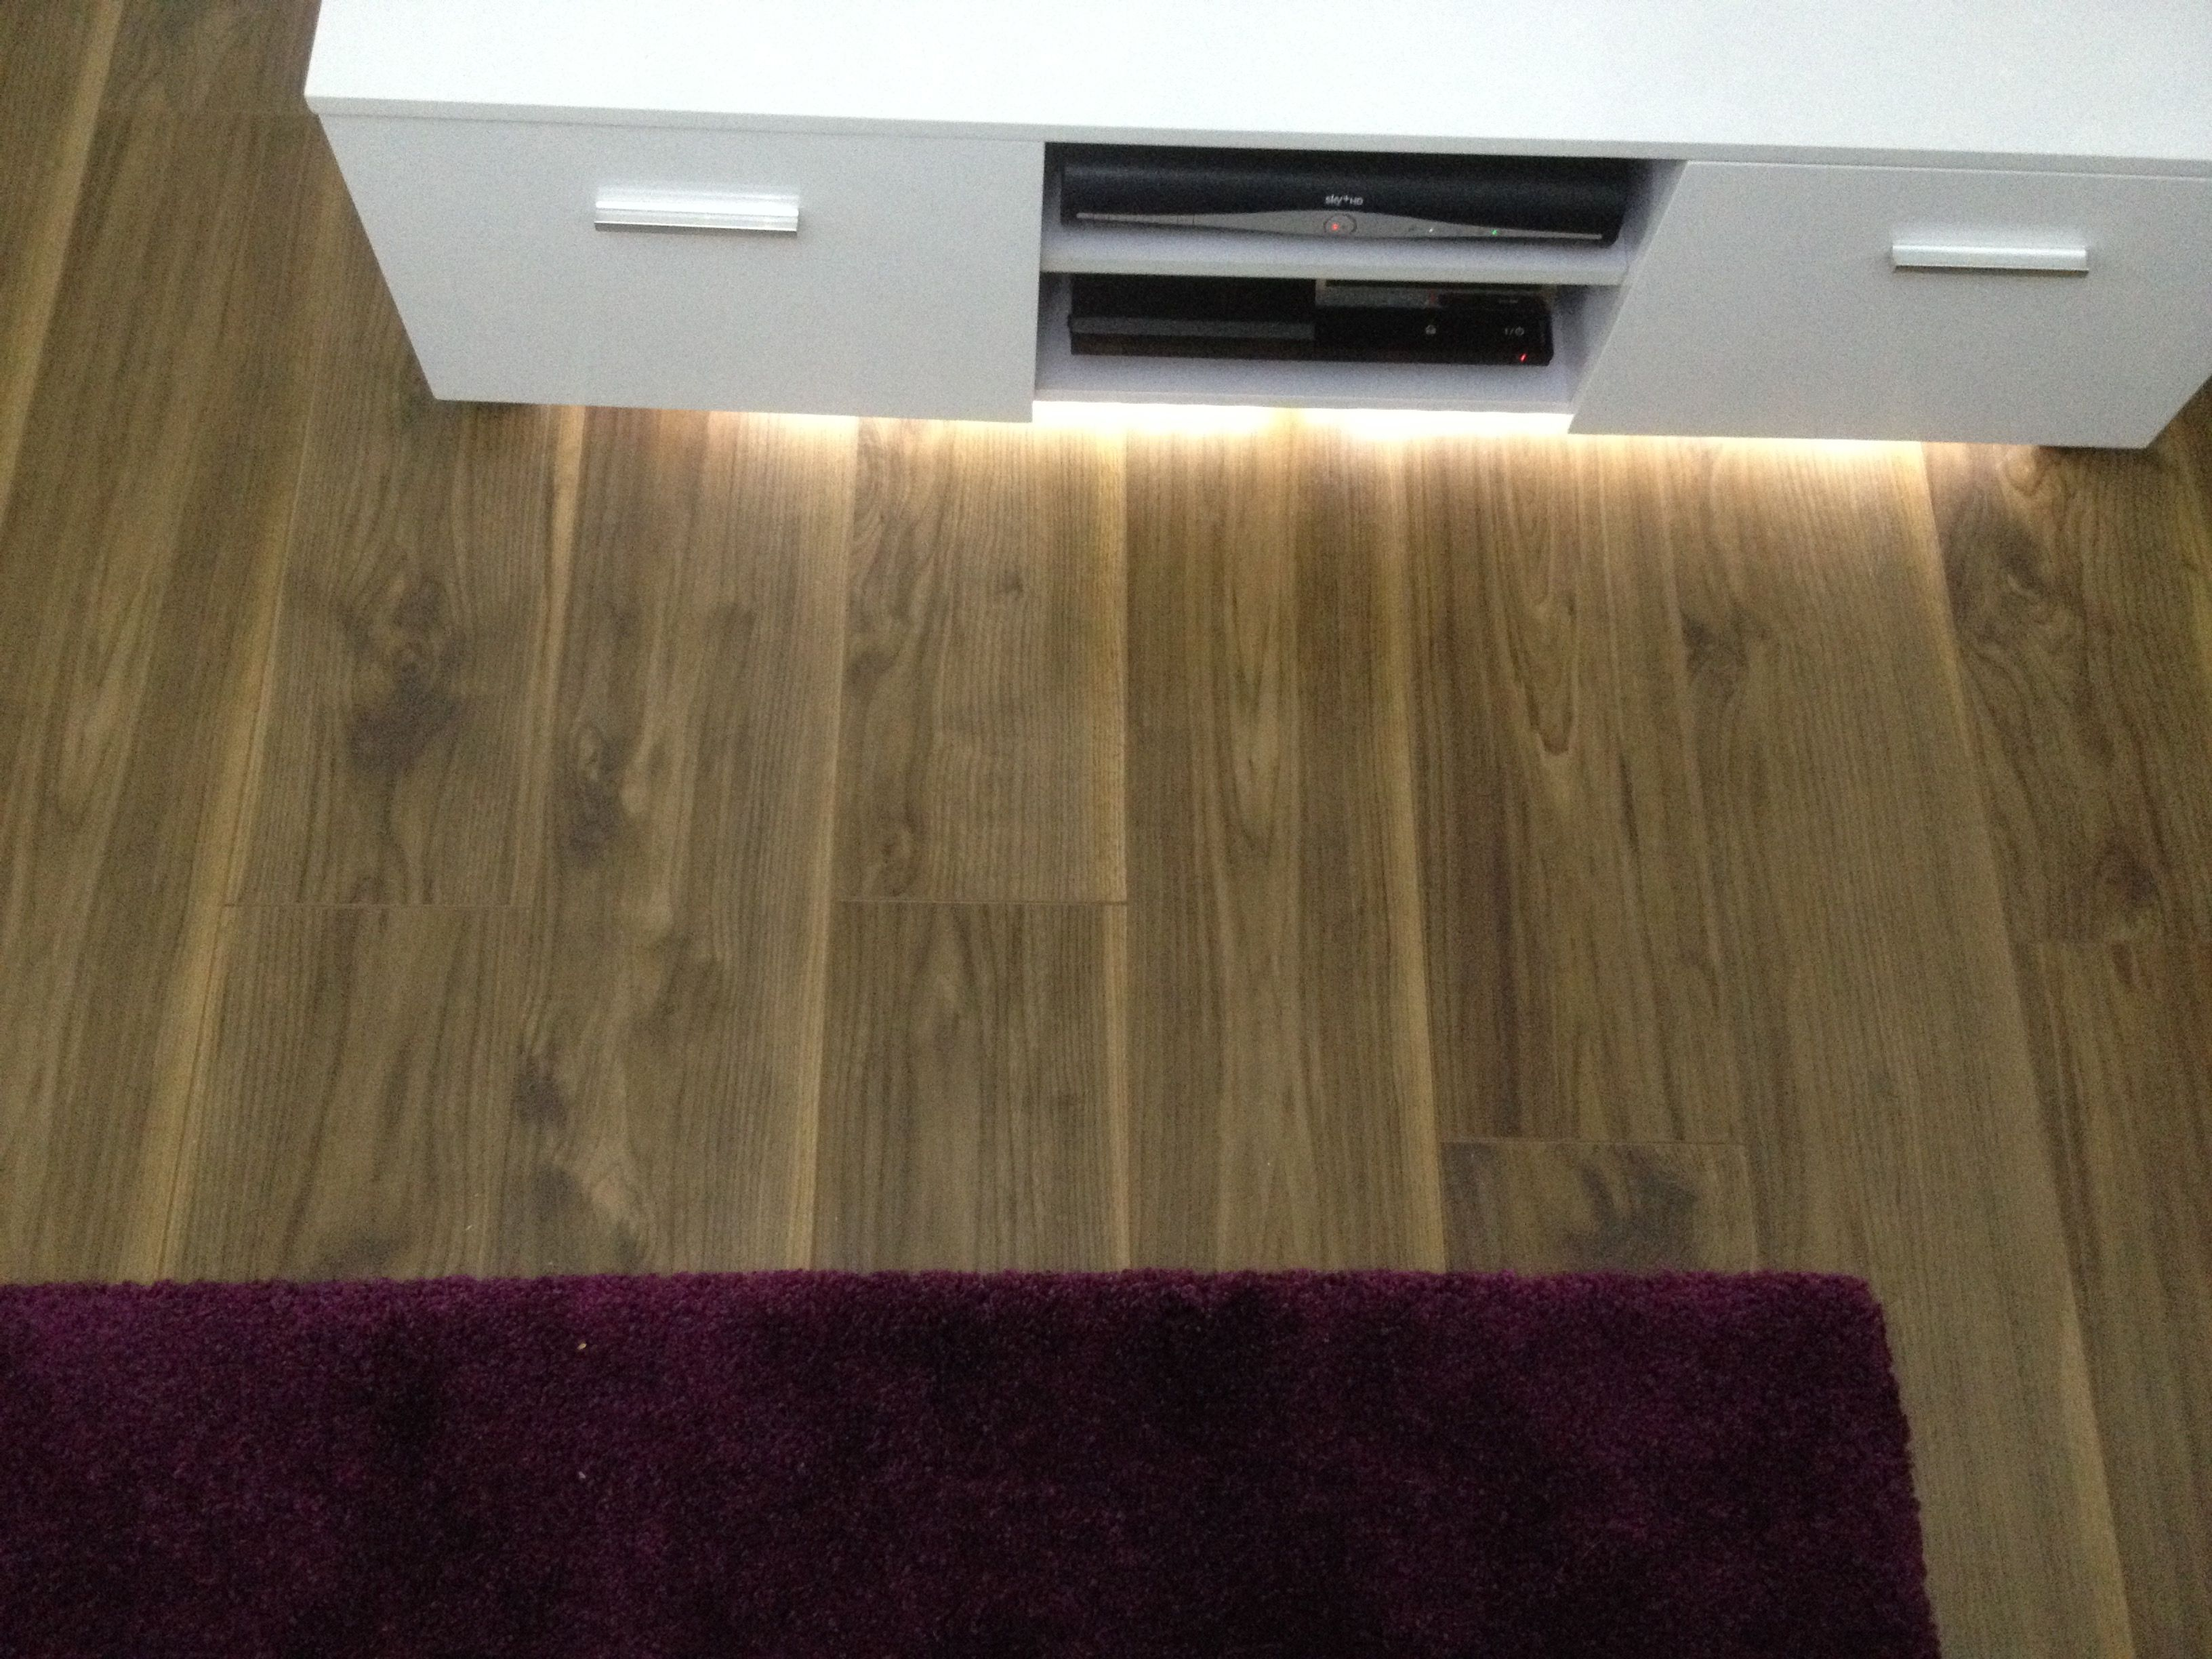 The Newline Atlanta Walnut is a great choice for the home